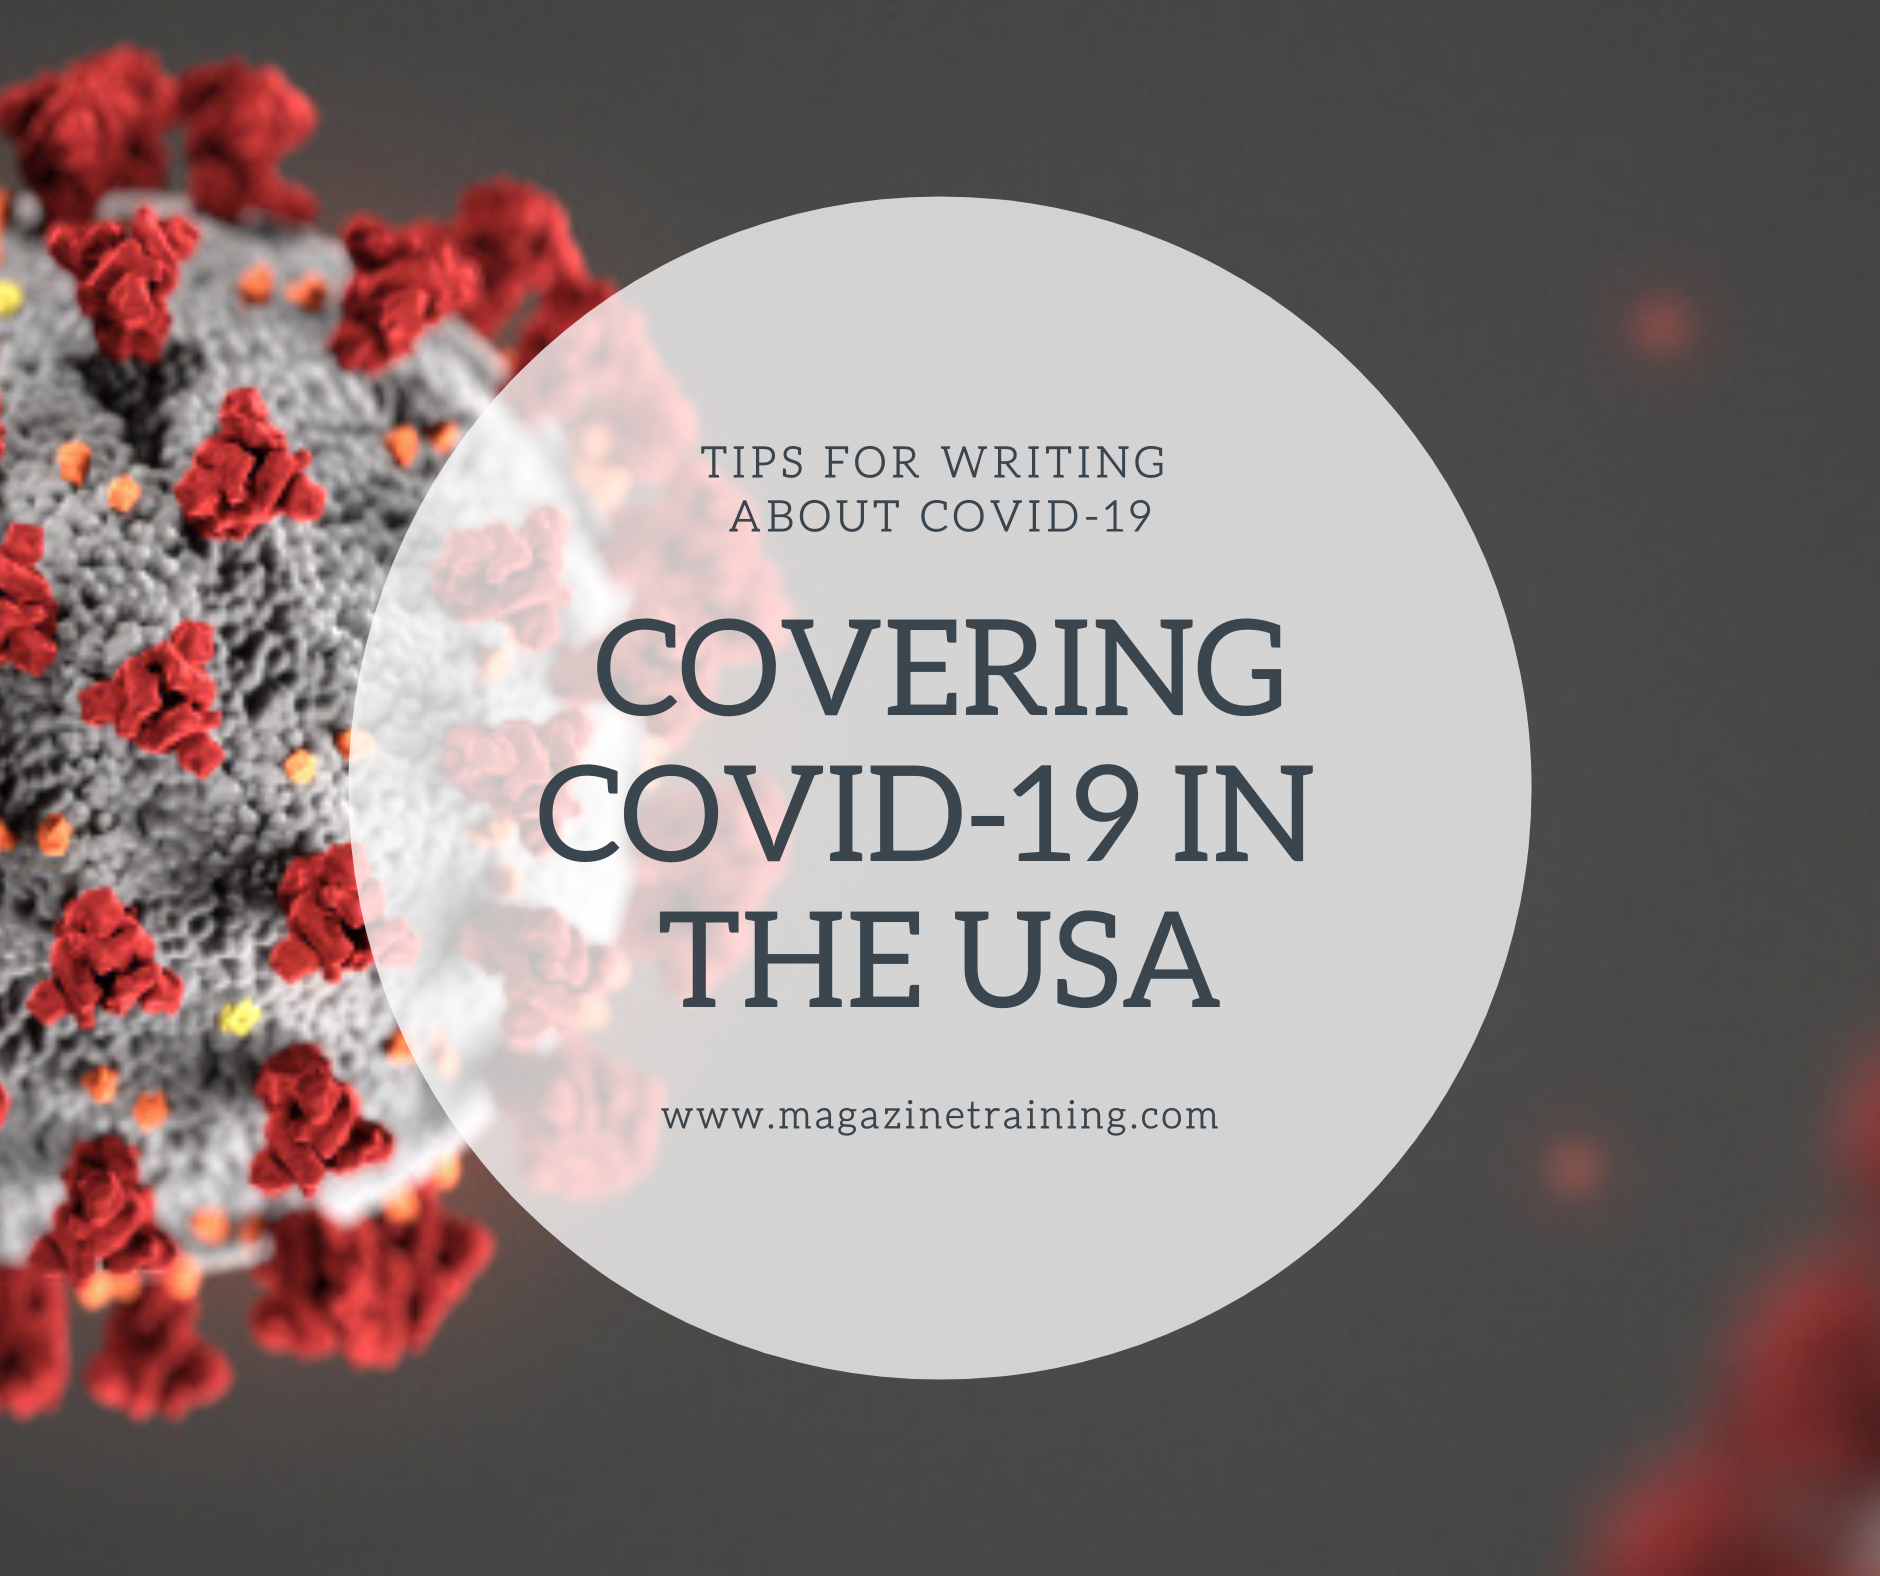 covering COVID-19 in the USA